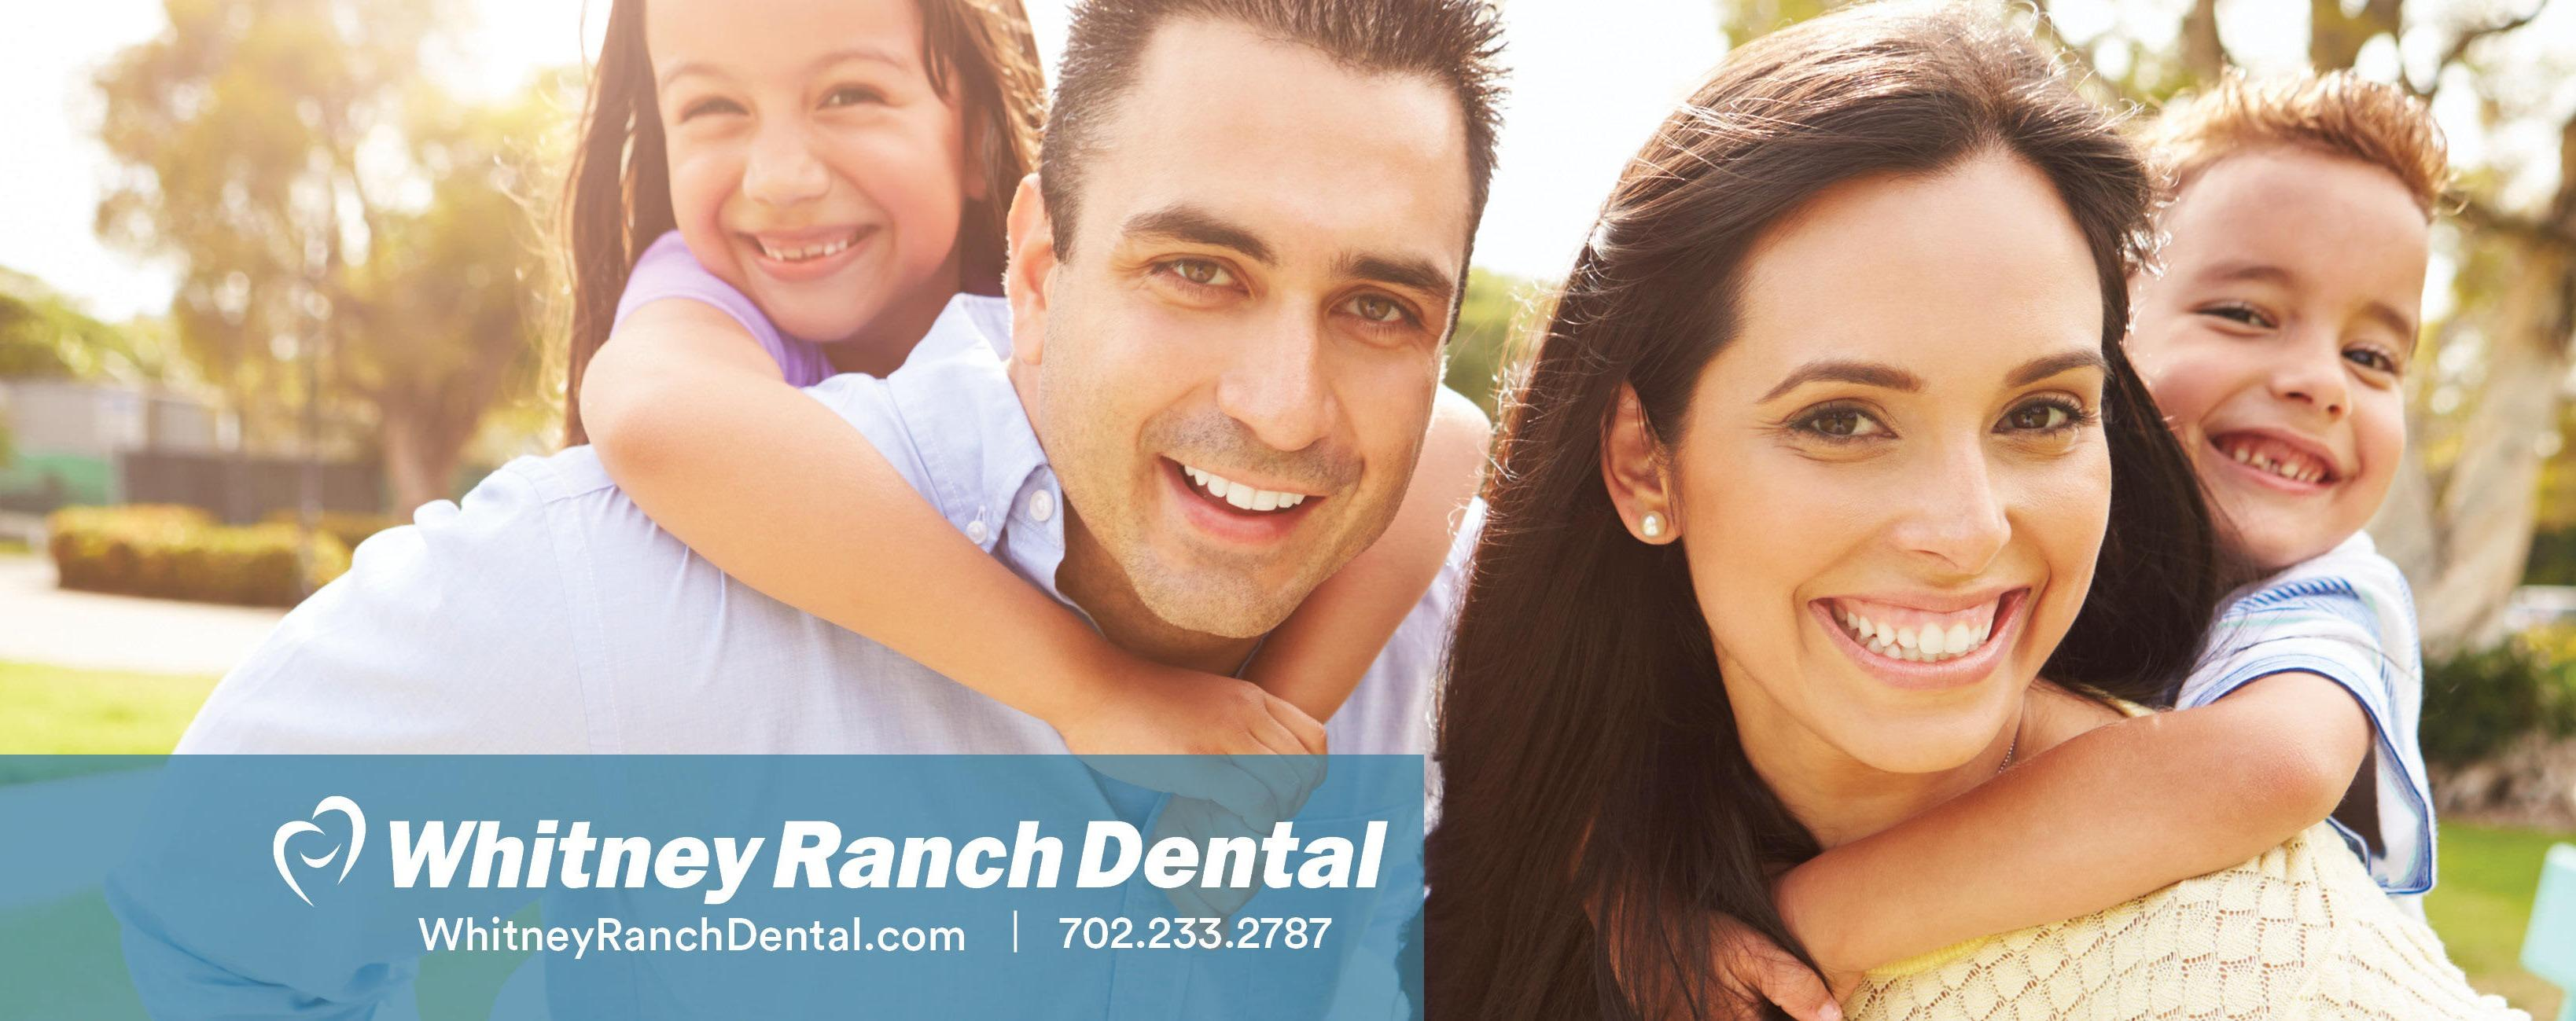 Whitney Ranch Dental image 0